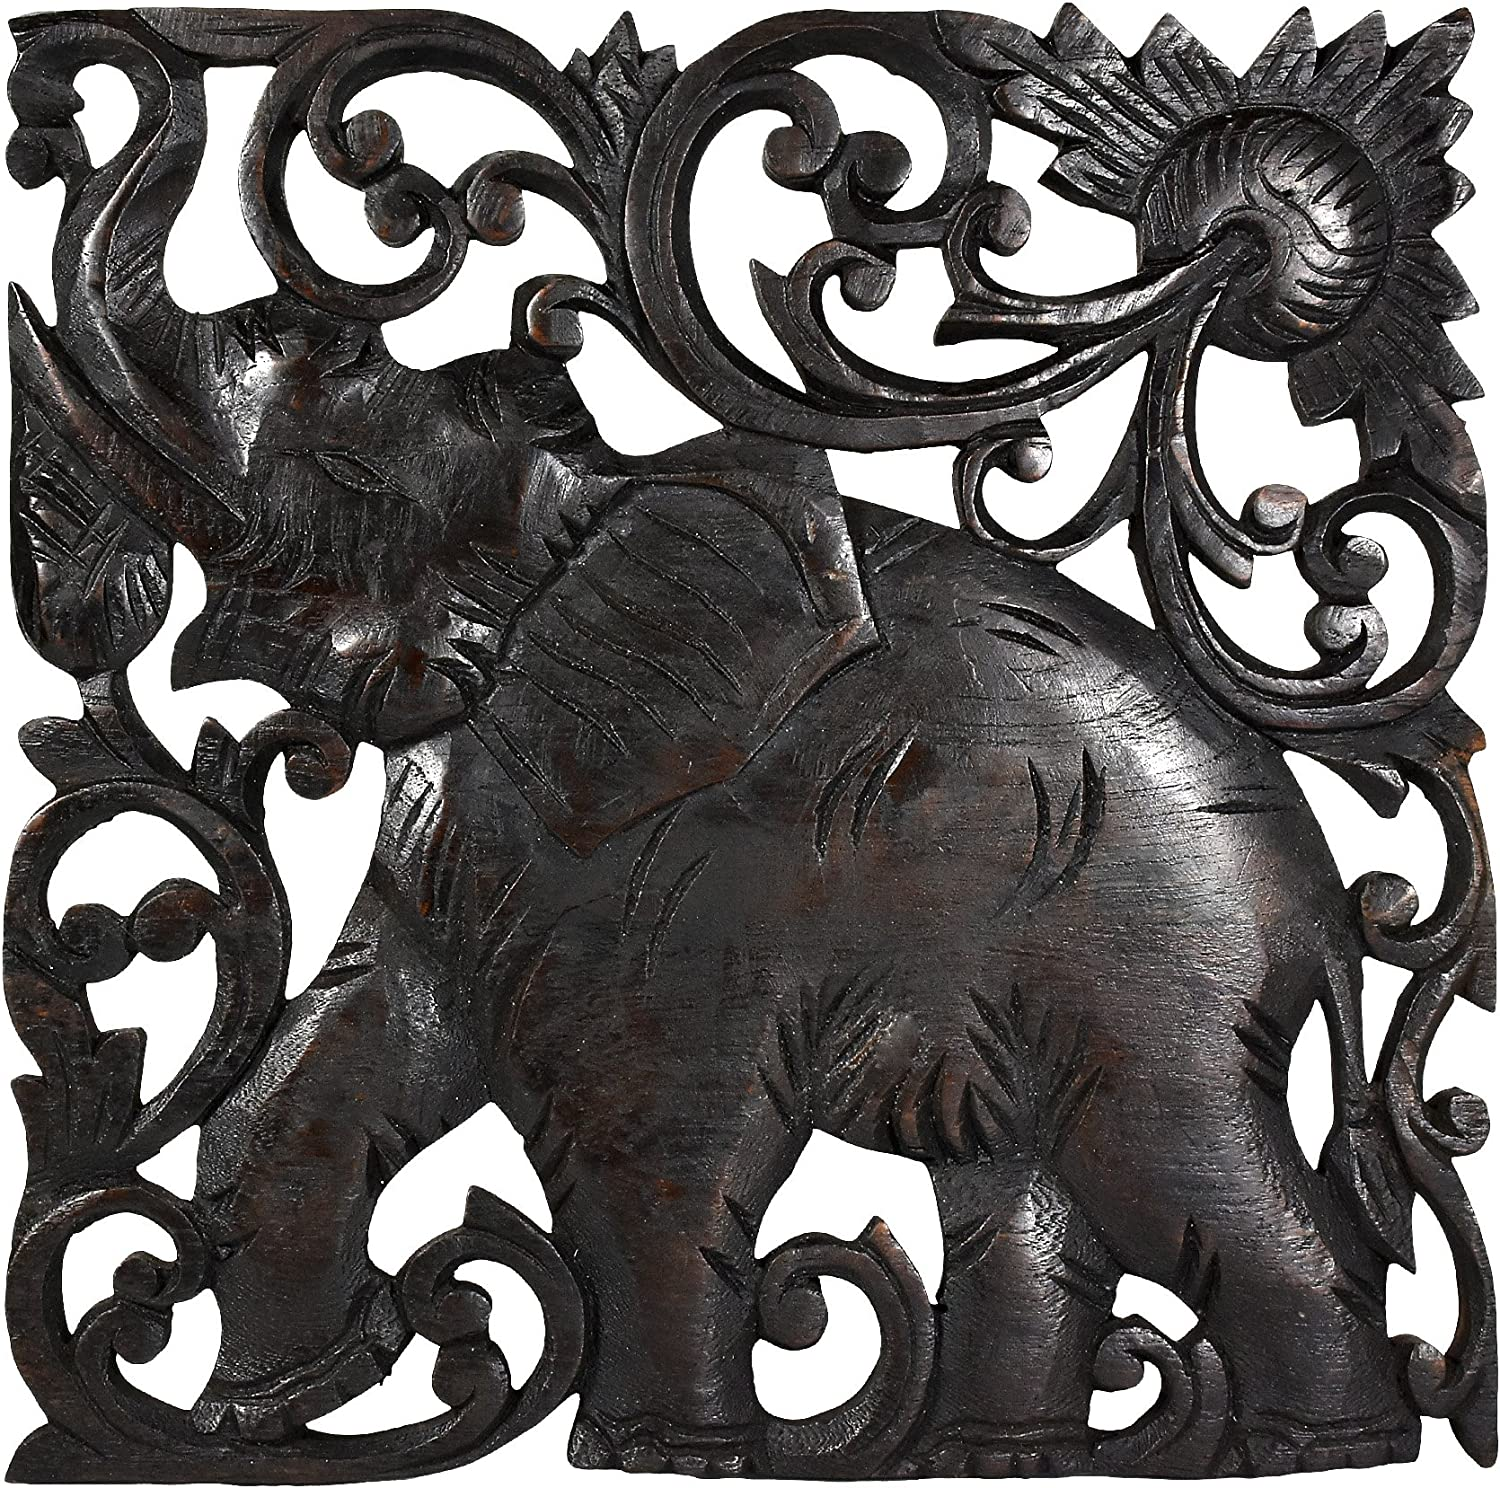 Victorious Elephant Hand Carved Square Teak Wood Wall Art 10inch